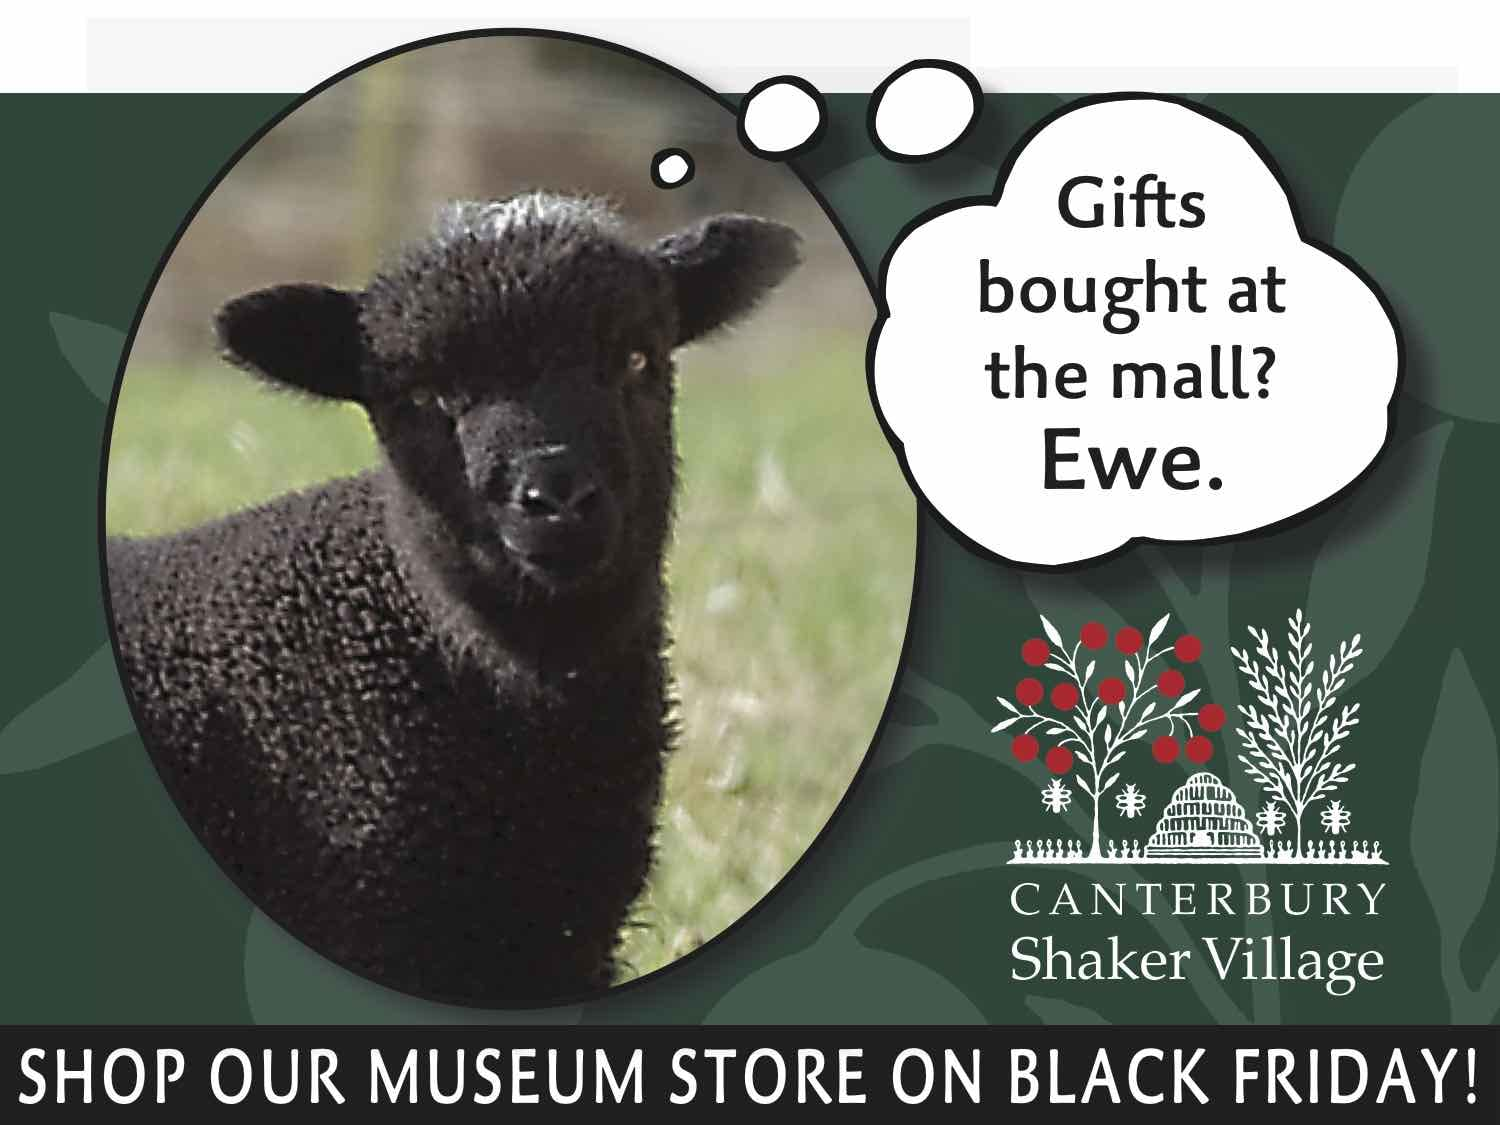 Direct Mail Created as part of a content marketing program at Canterbury Shaker Village